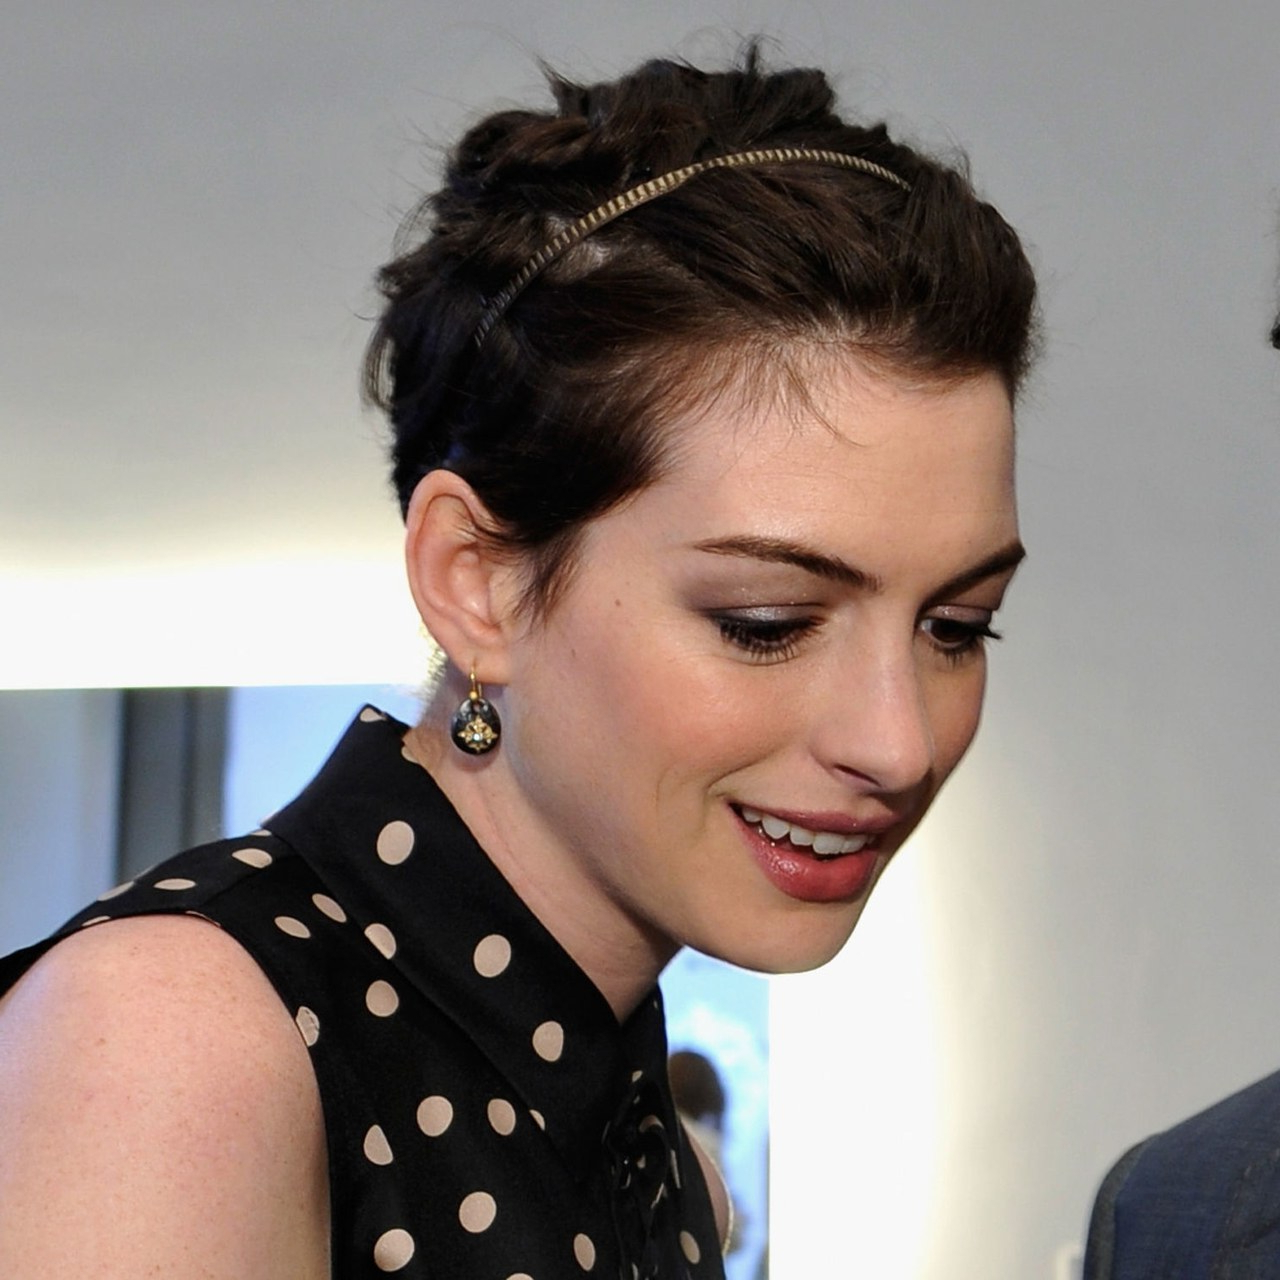 Anne Hathaway Uses A Headband To Create A Cute Hairstyle For Her Within Cute Short Hairstyles With Headbands (View 19 of 25)